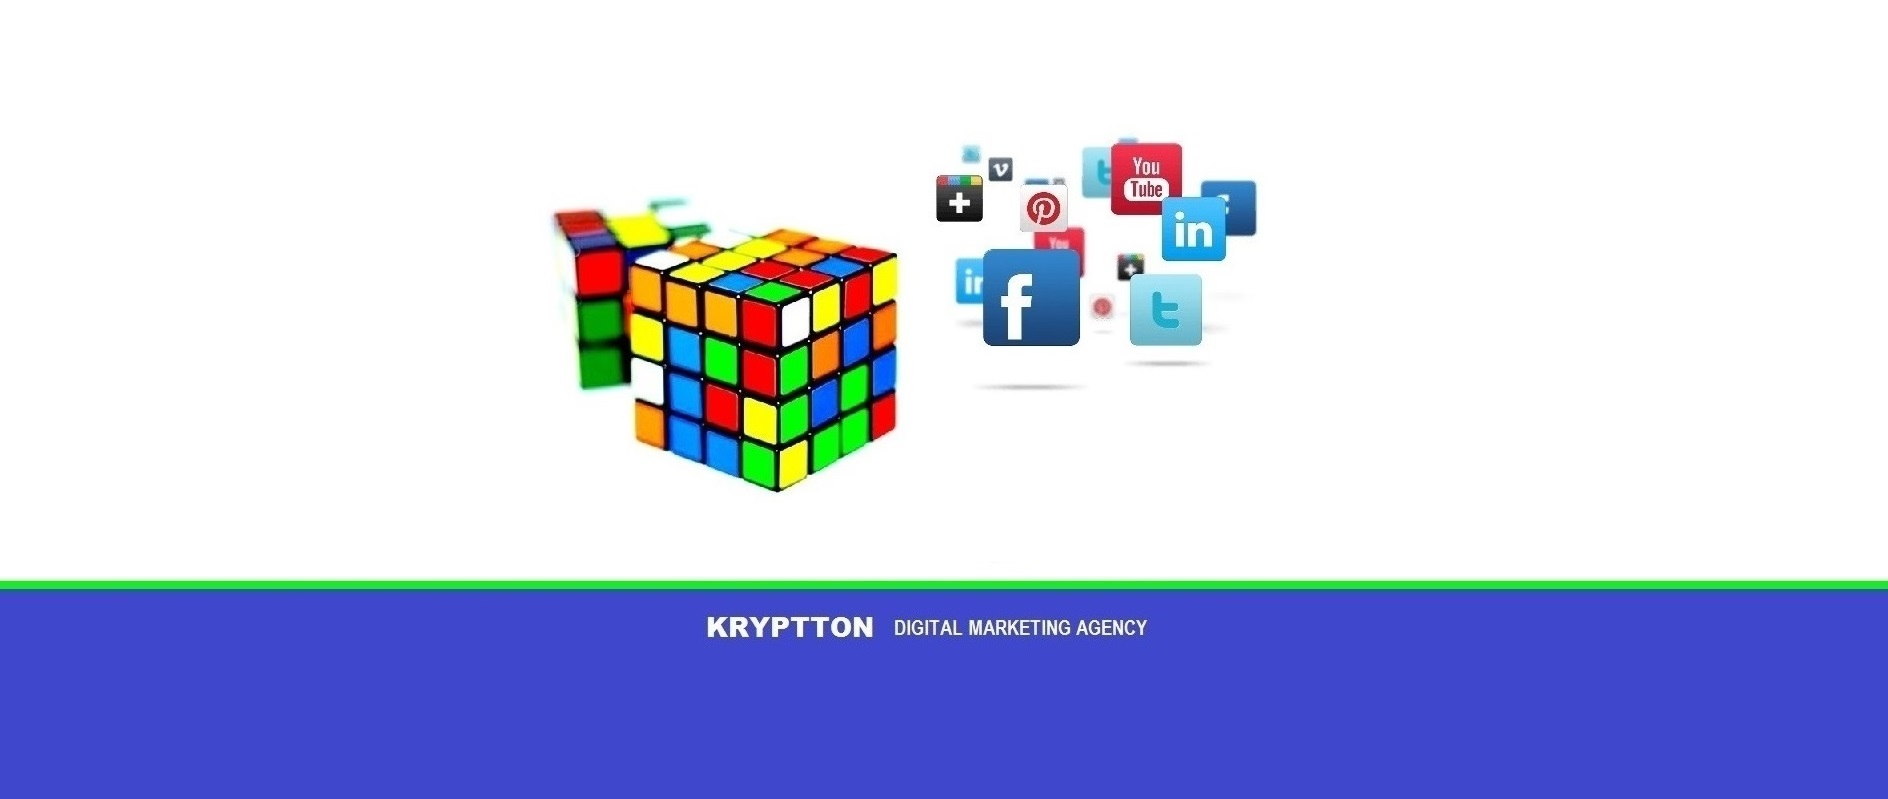 Kryptton Digital Marketing Agency